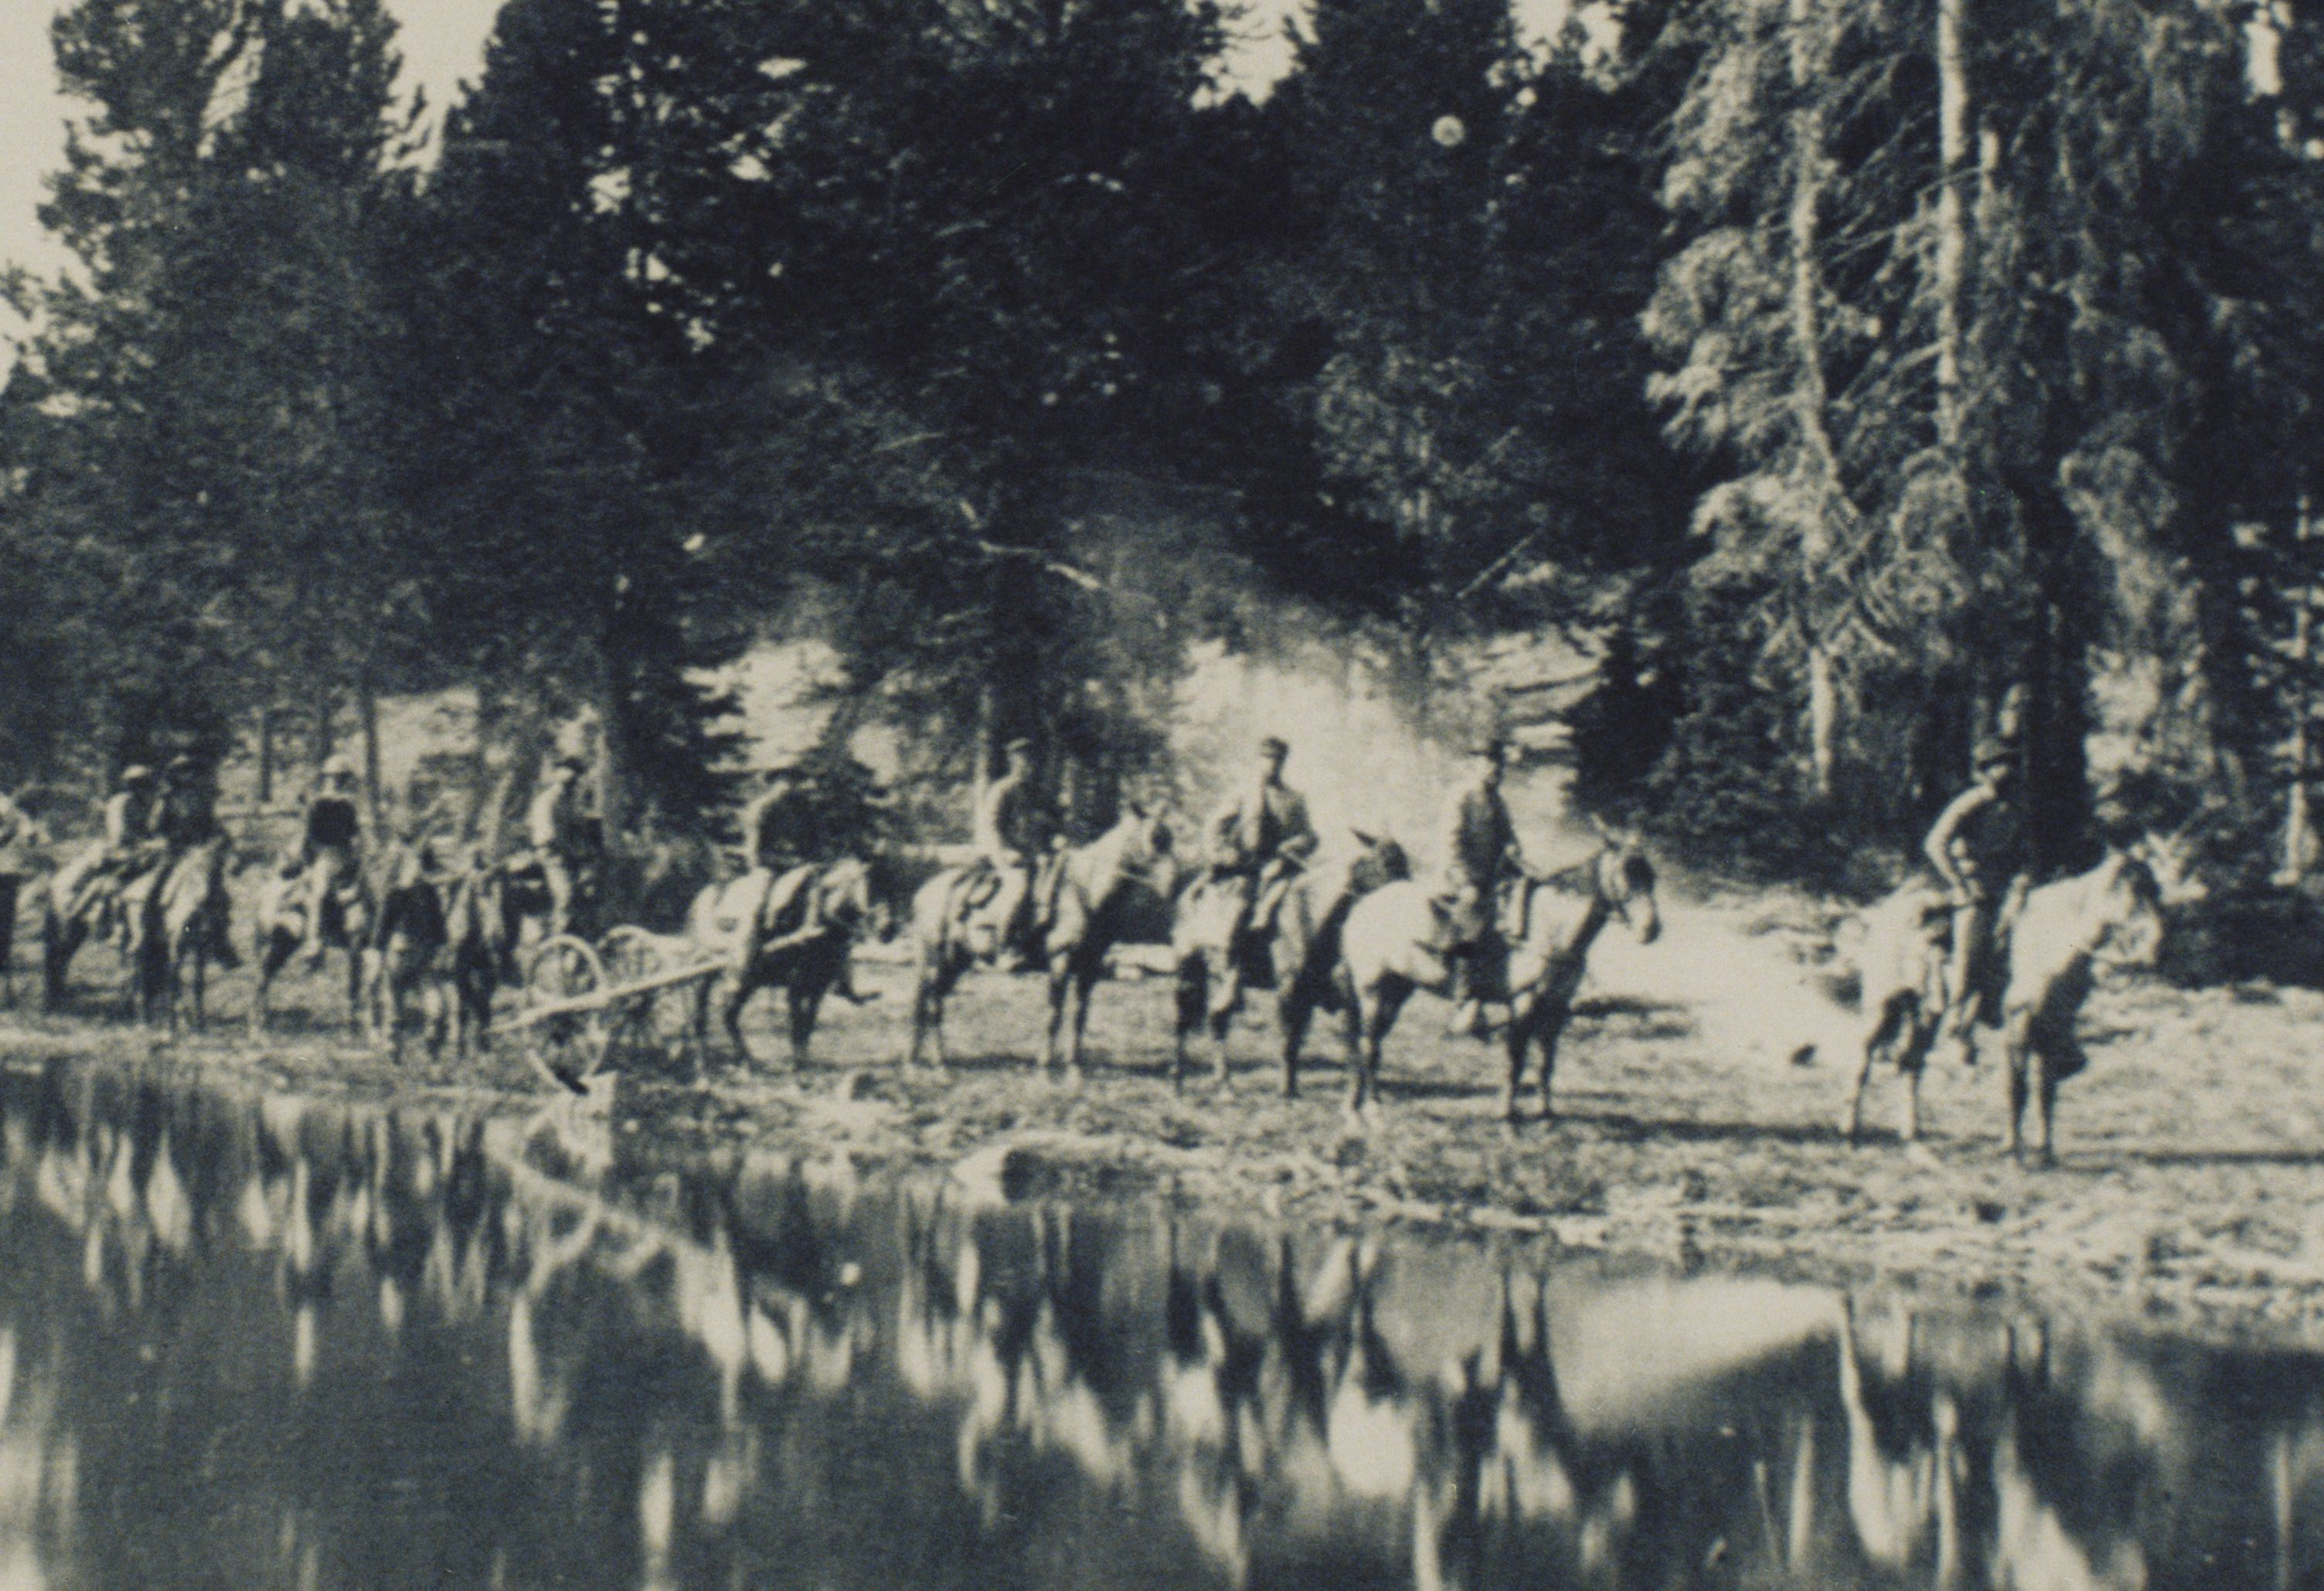 The First National Park Yellowstone In 1872